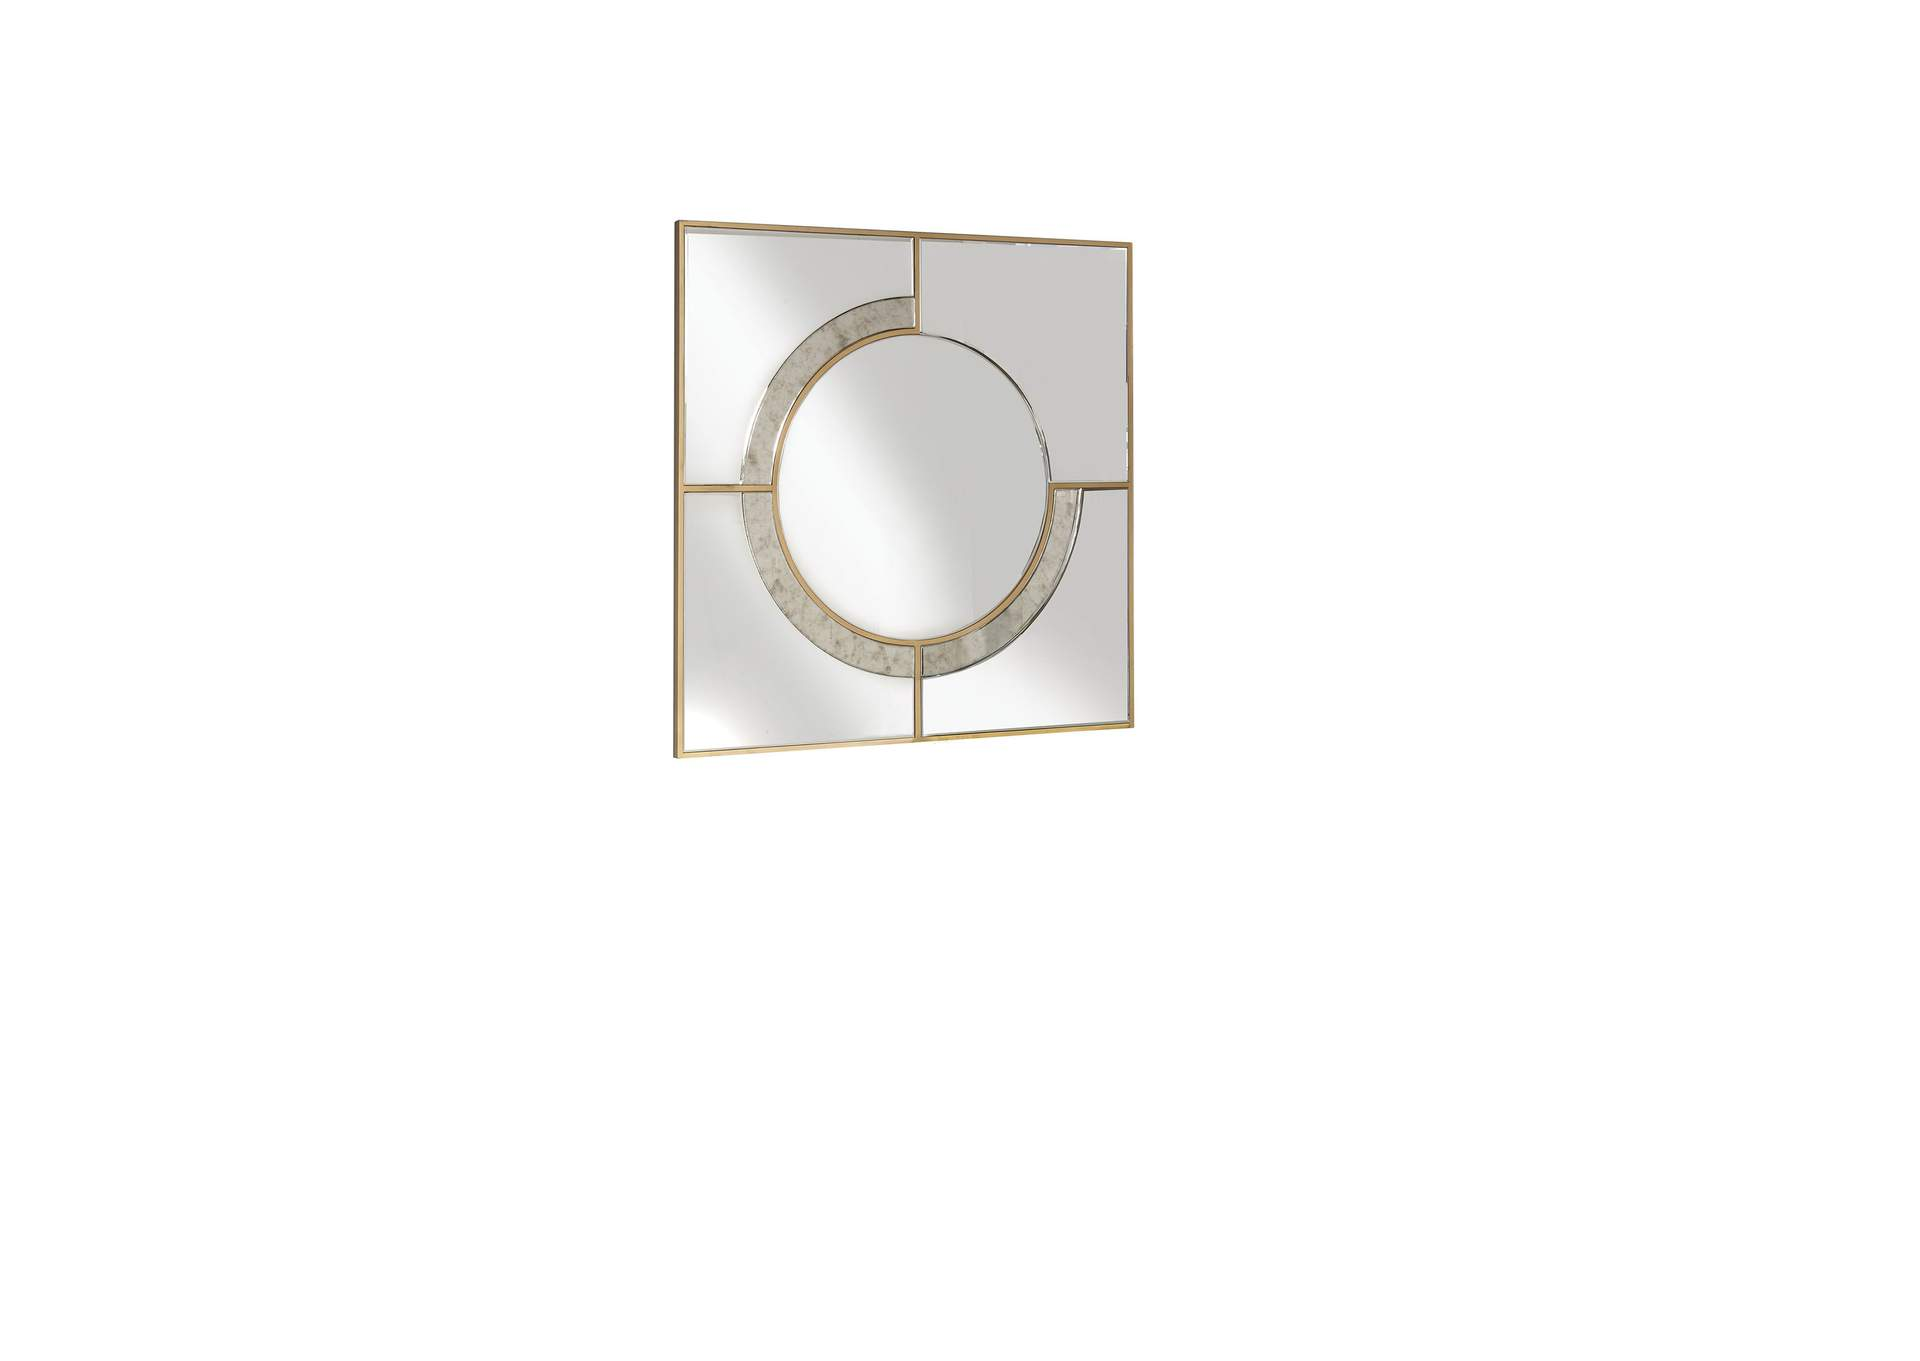 Hanne Mirrored Wall Decor,Acme